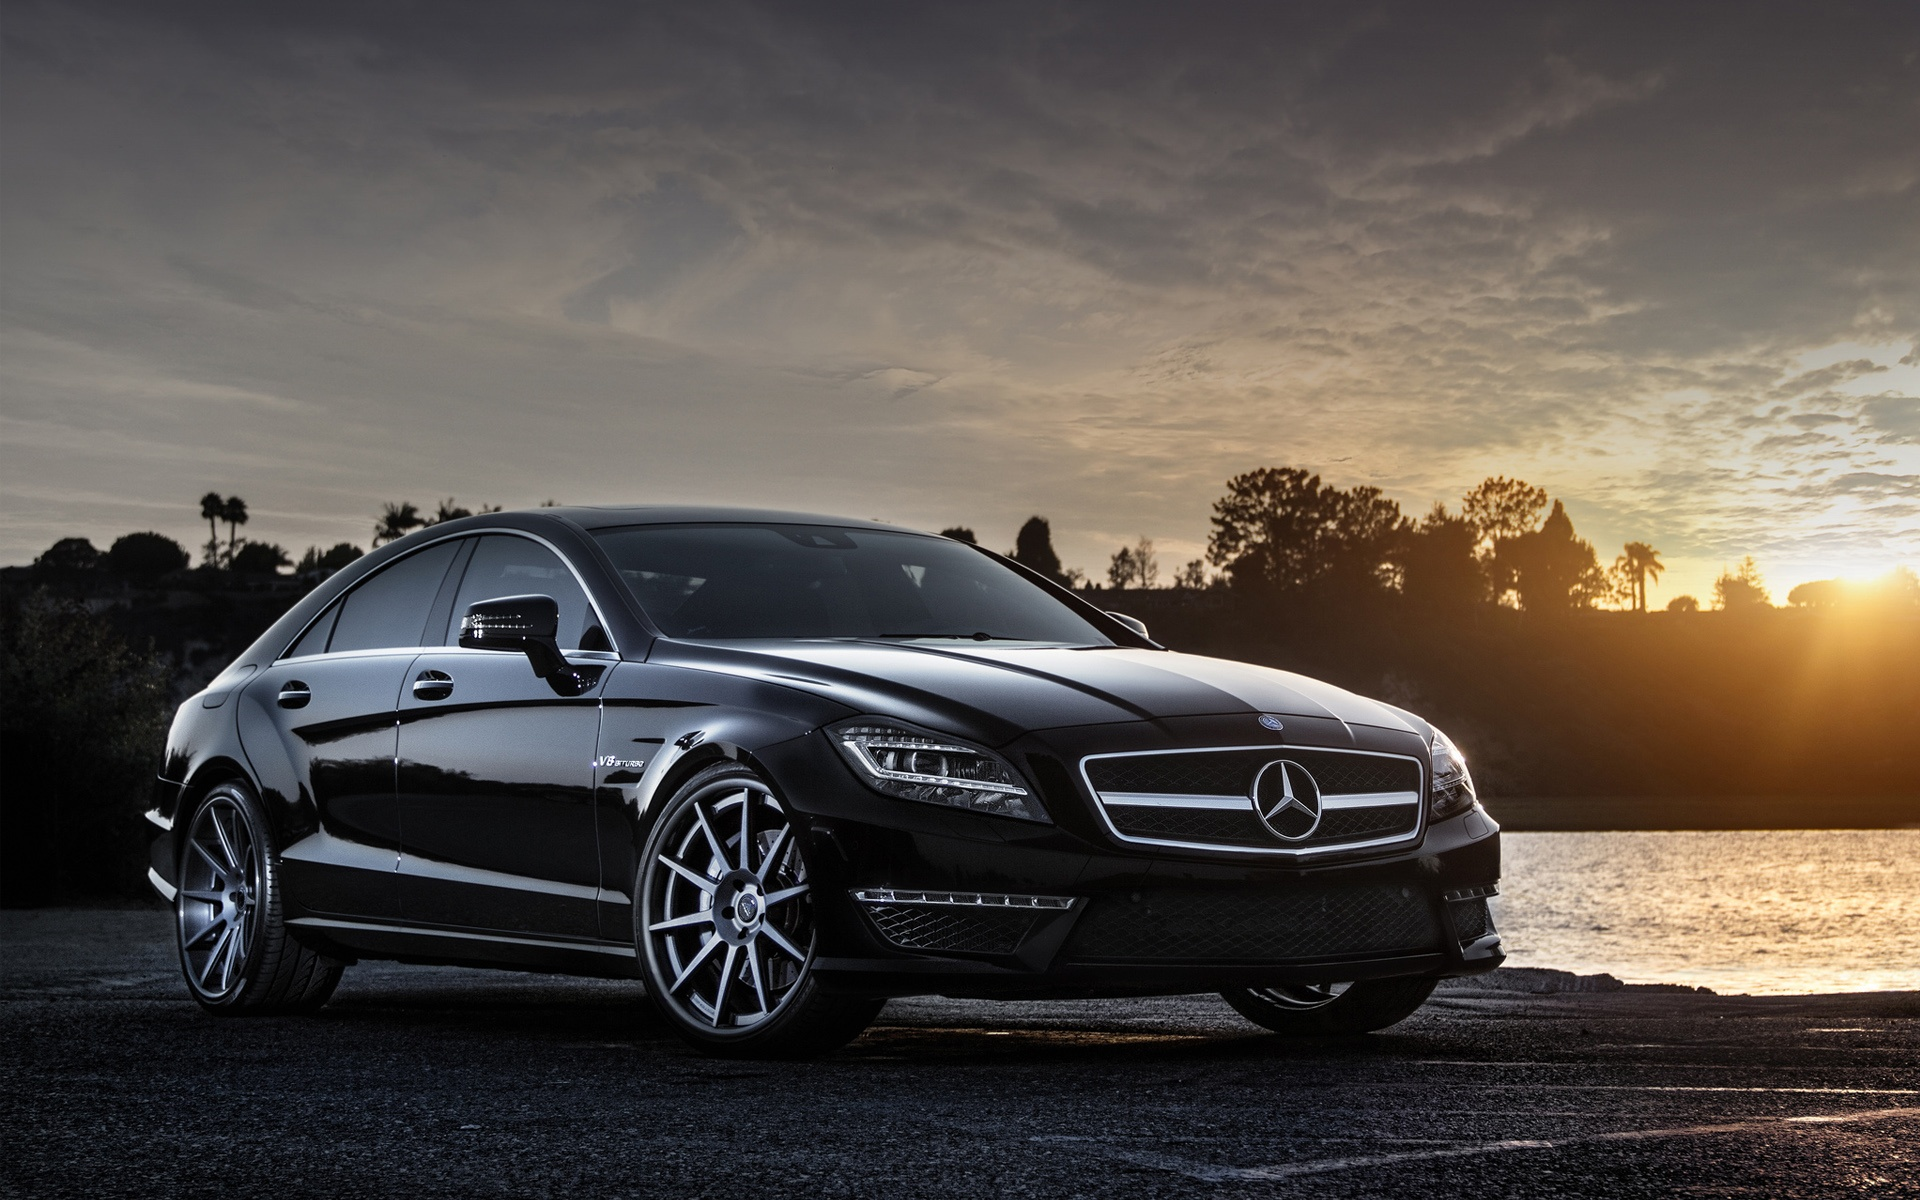 Mercedes Benz Wallpapers Hd